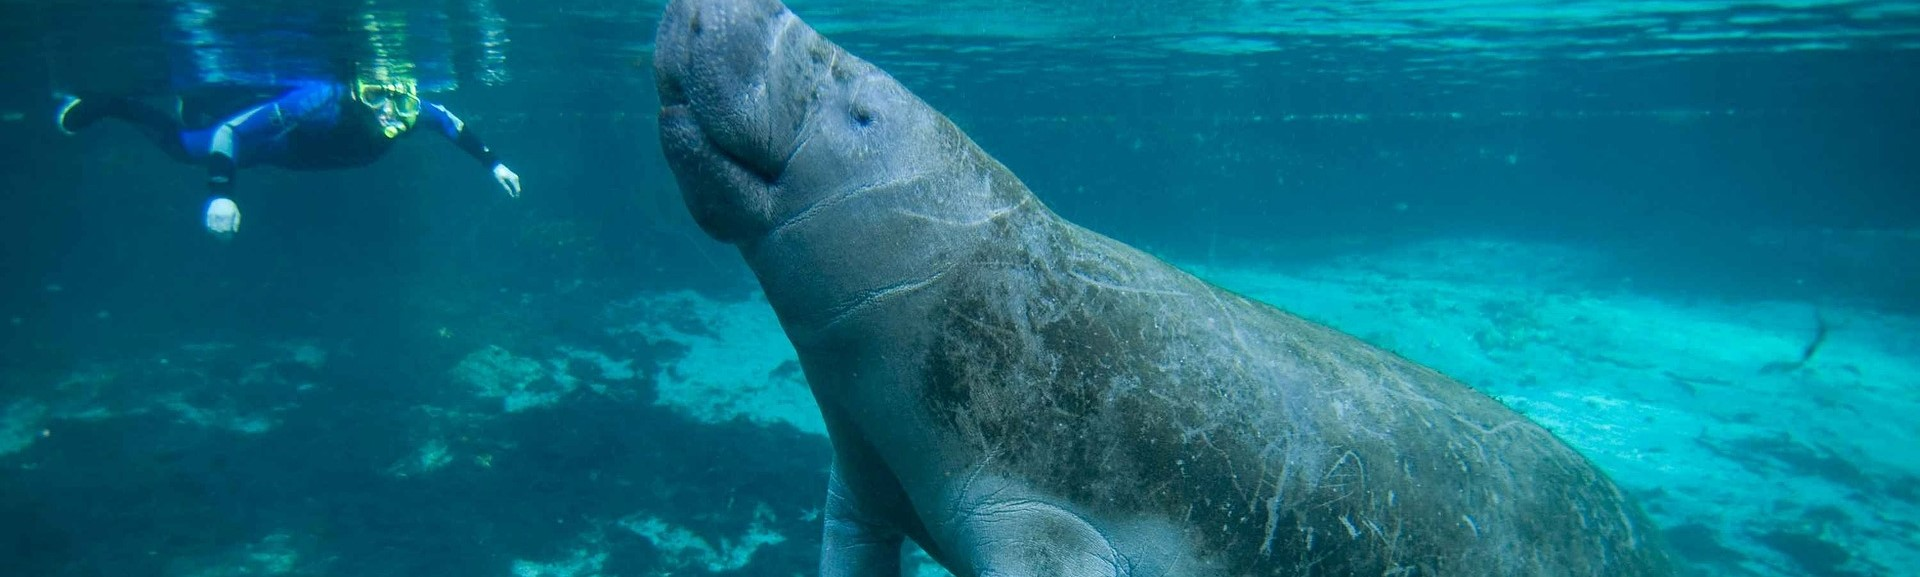 Swimming Together with Manatee | Breast Cancer Car Donations